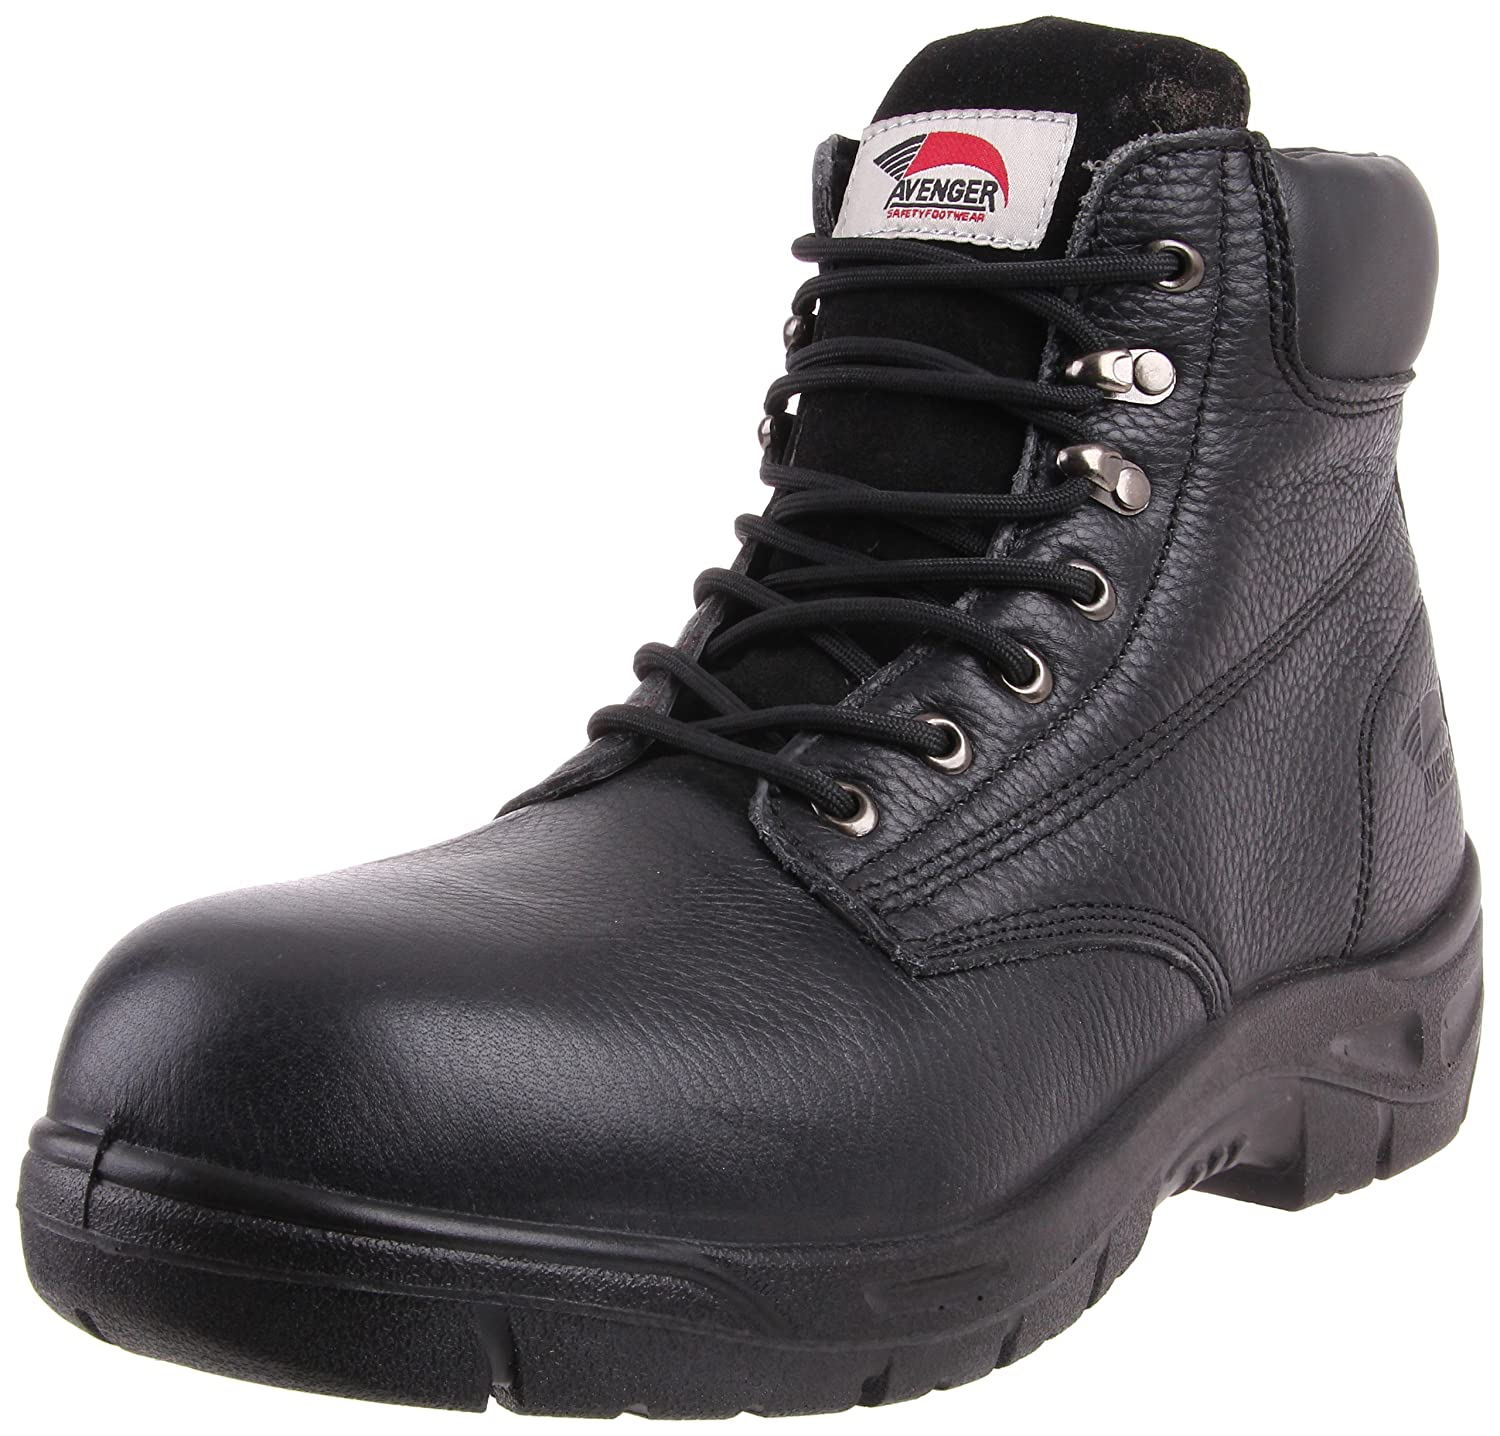 Avenger Safety Footwear メンズ B002WC8BJQ 11 C/D US|ブラック ブラック 11 C/D US